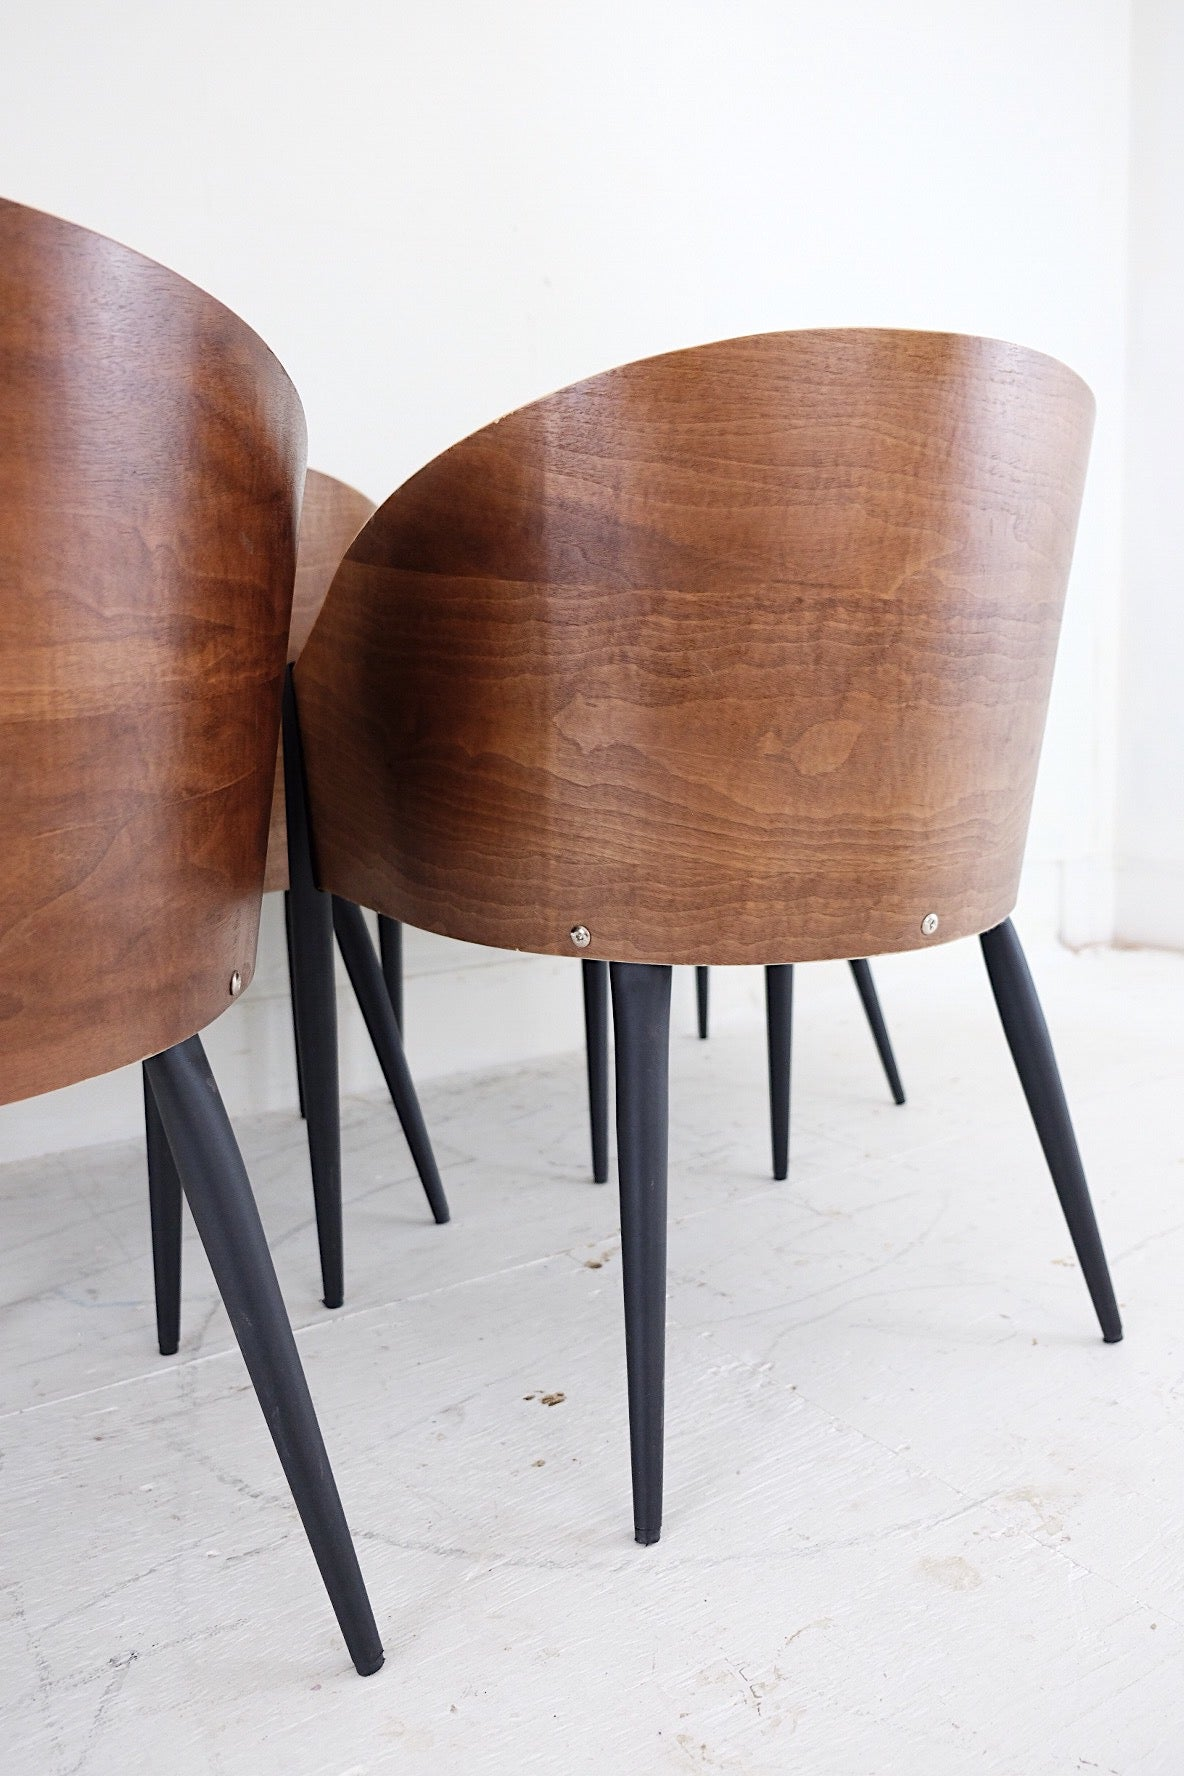 Five Walnut Mid Century Modern Inspired Chairs